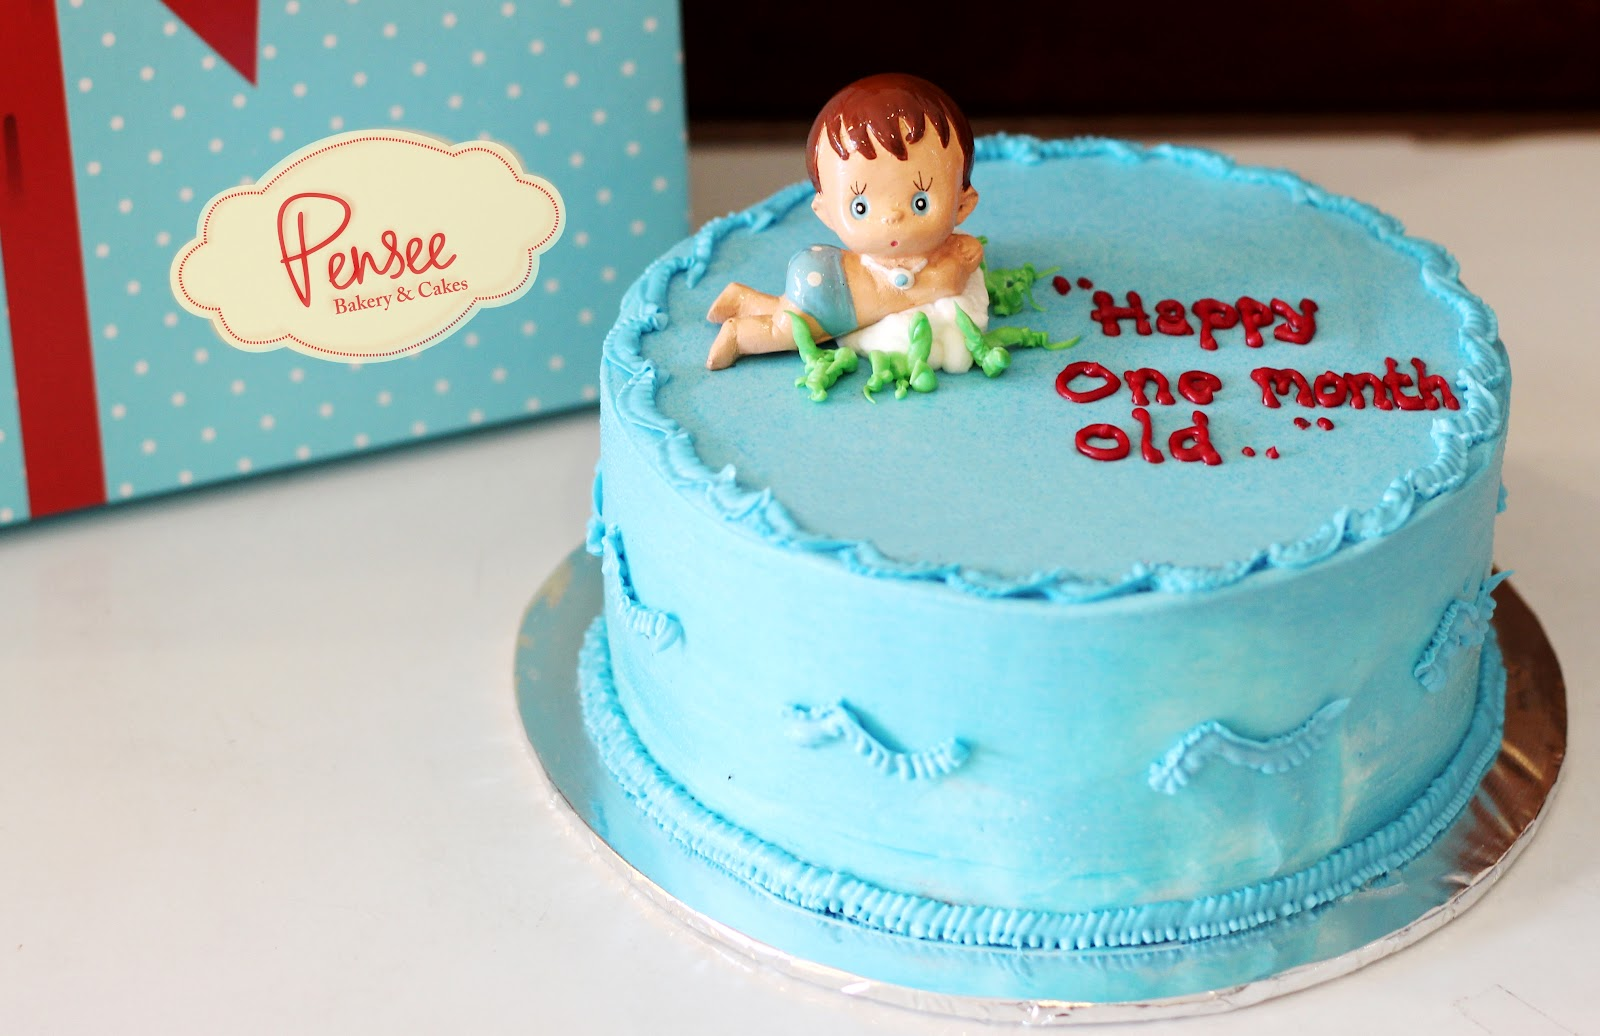 One Month Baby Cake Pensee Bakery